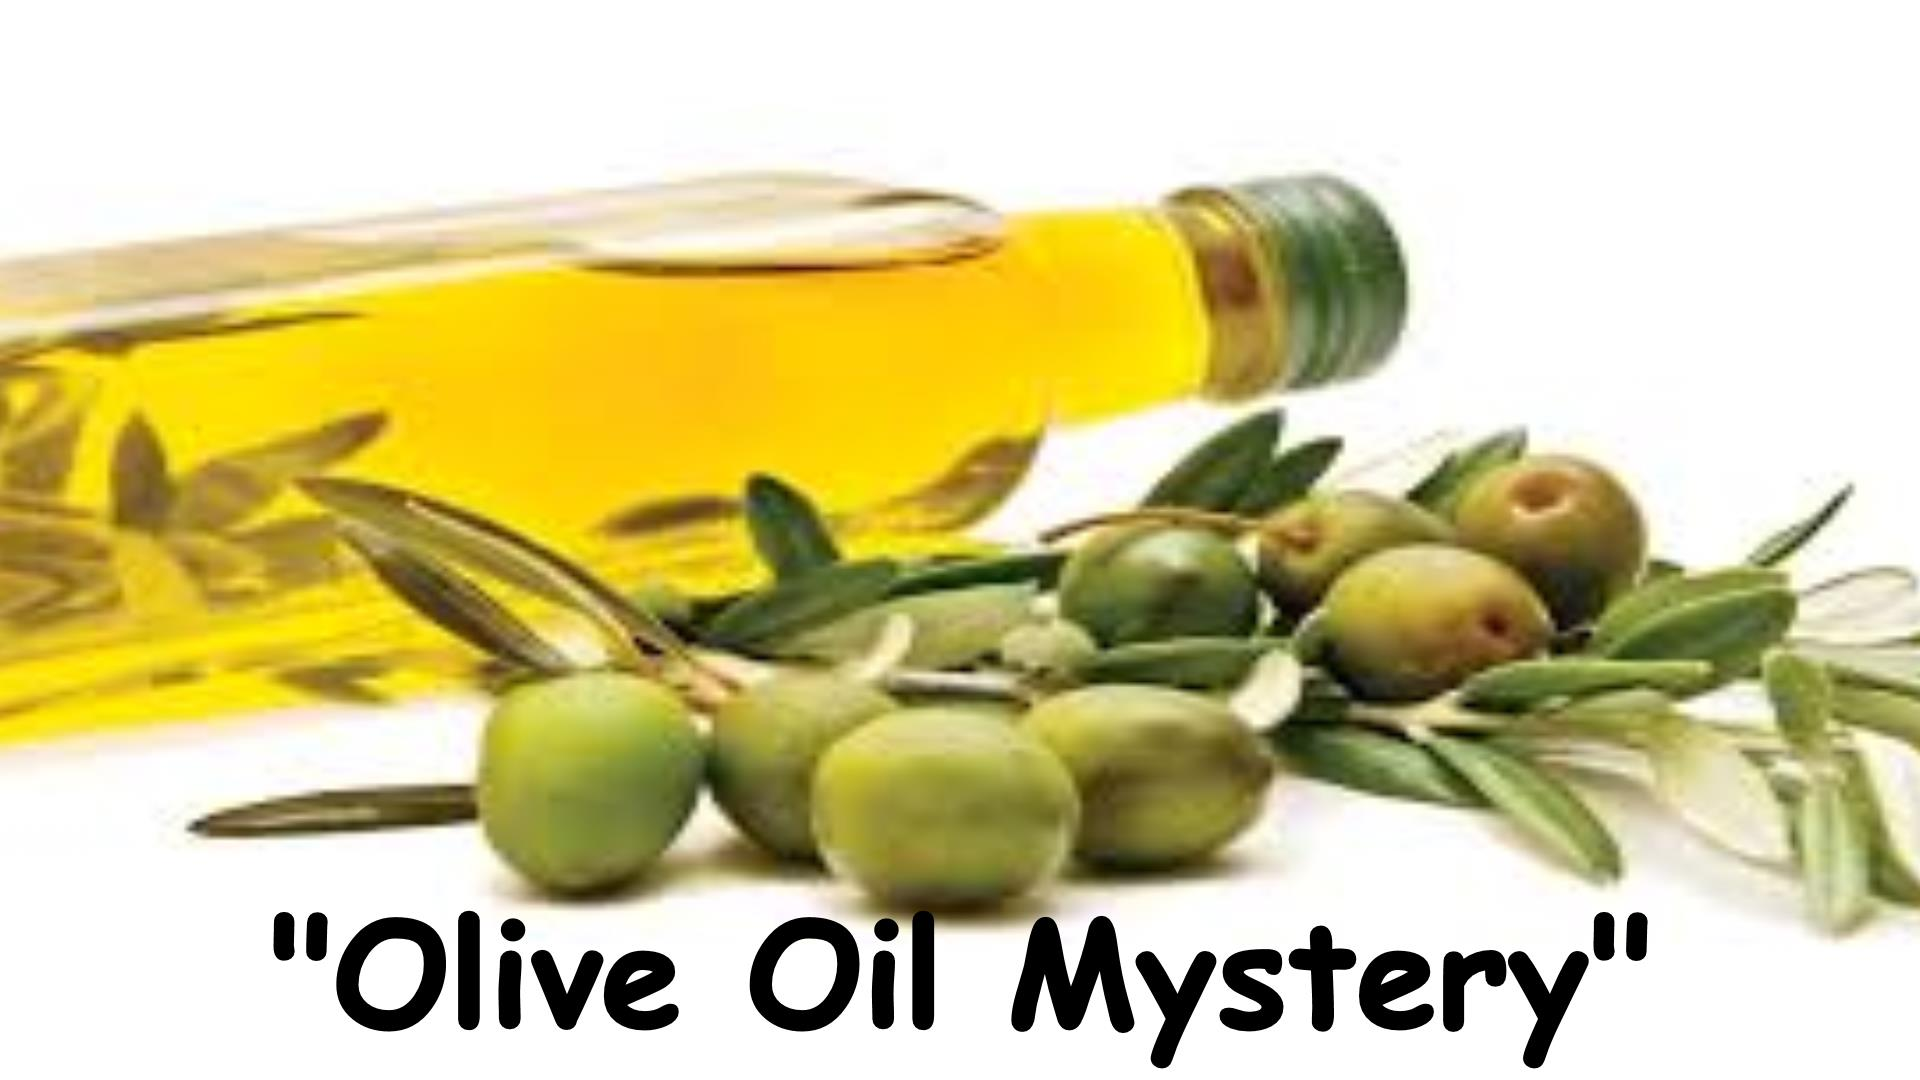 Olive Oil Mystery